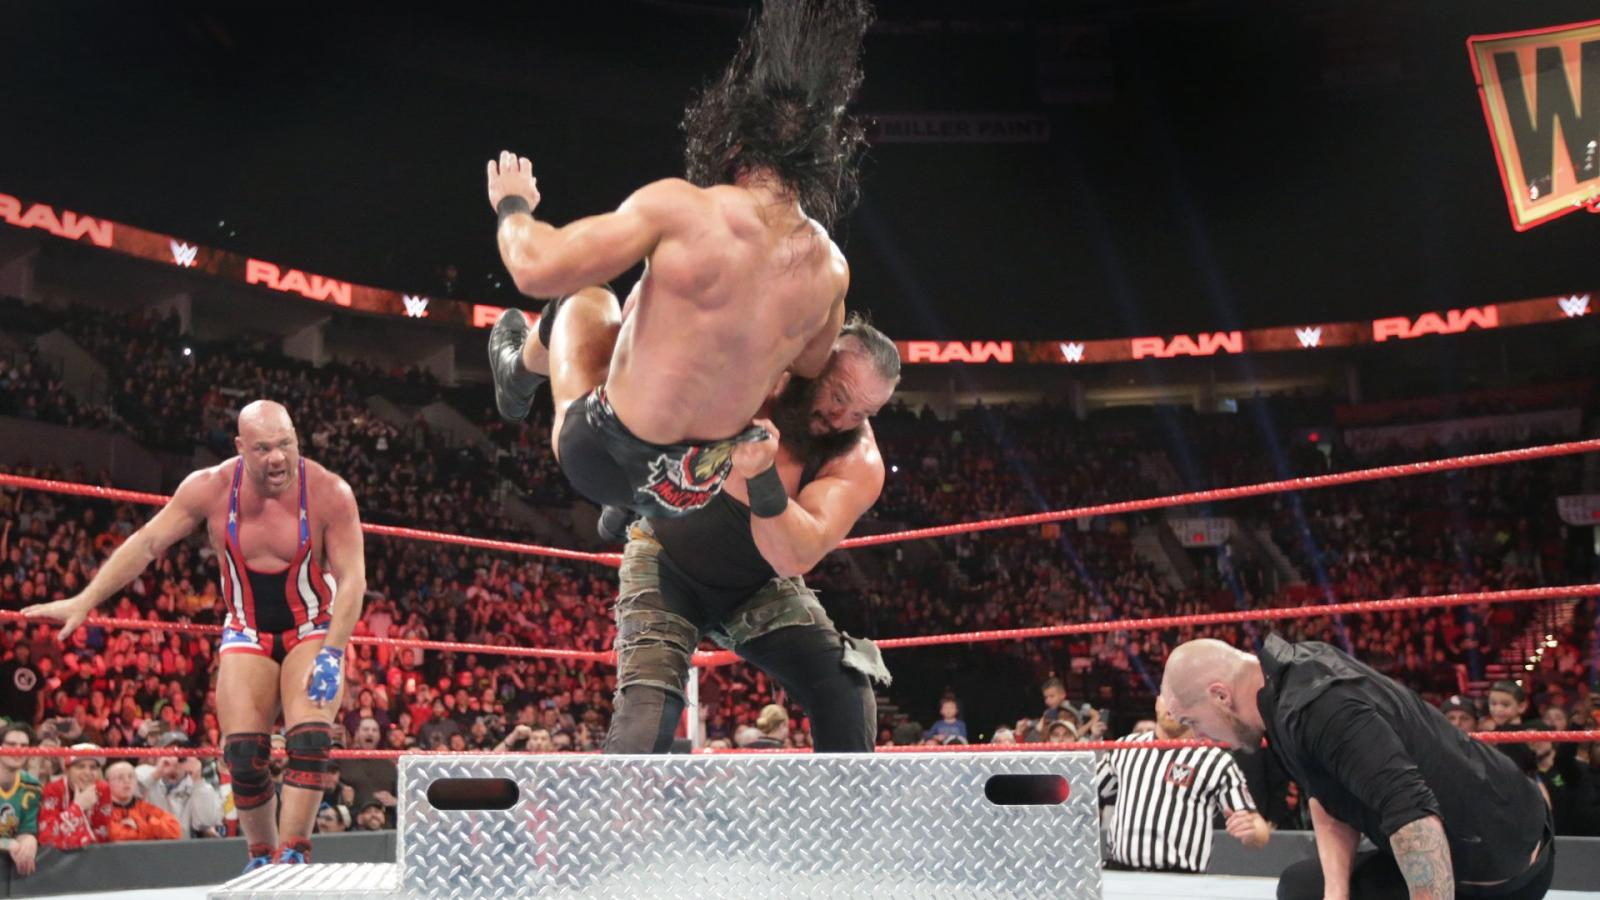 Wwe Raw The Road To Wwe Elimination Chamber 2019 Wwe